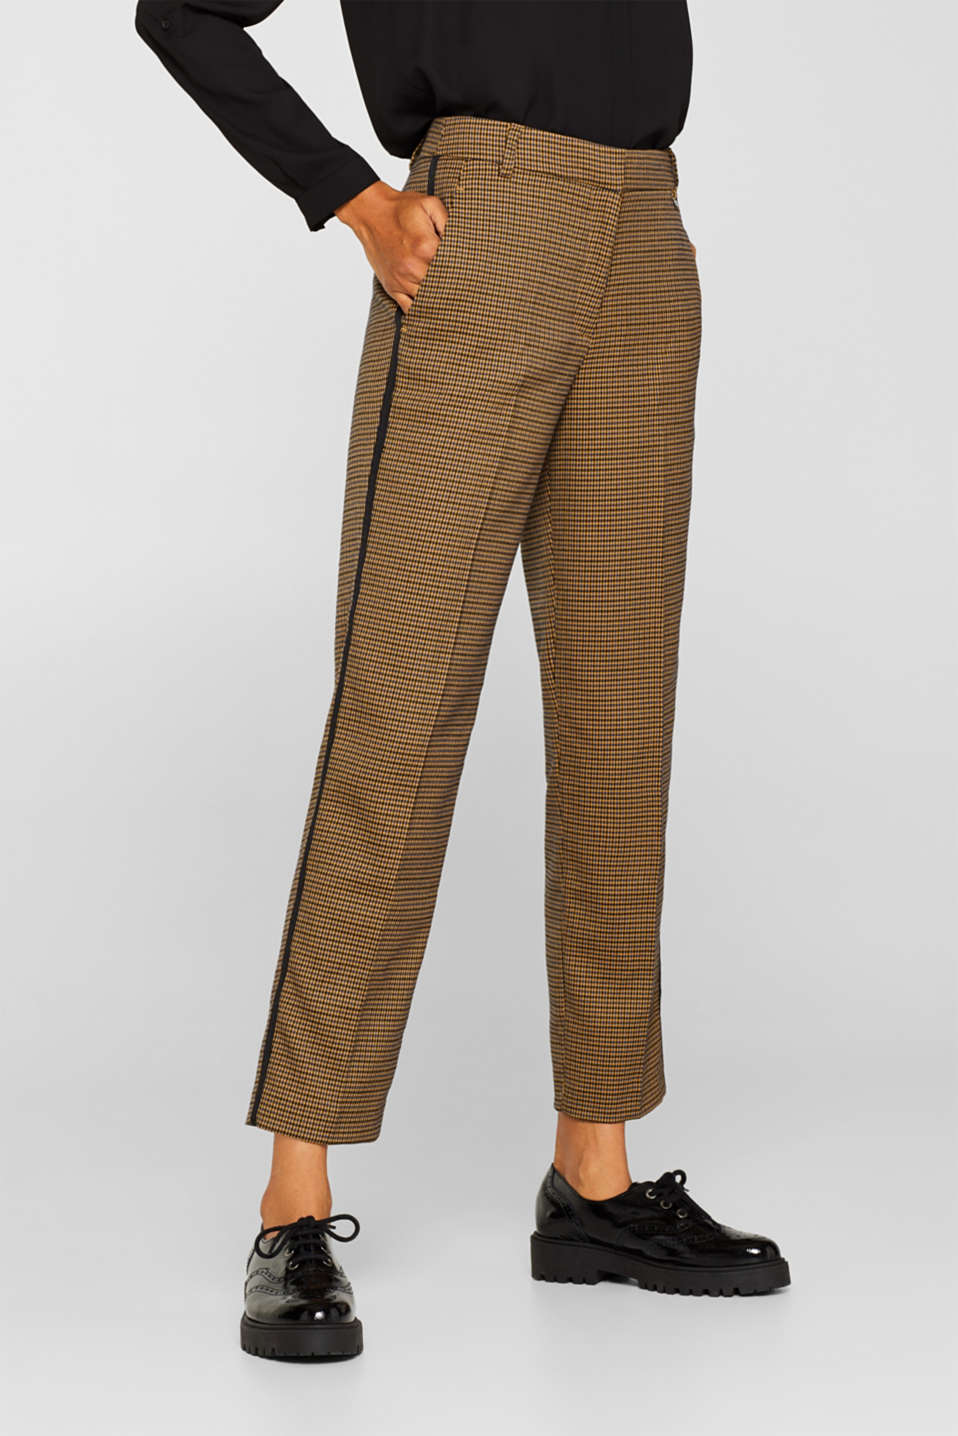 Stretch trousers with a houndstooth pattern and racing stripes, BARK, detail image number 6